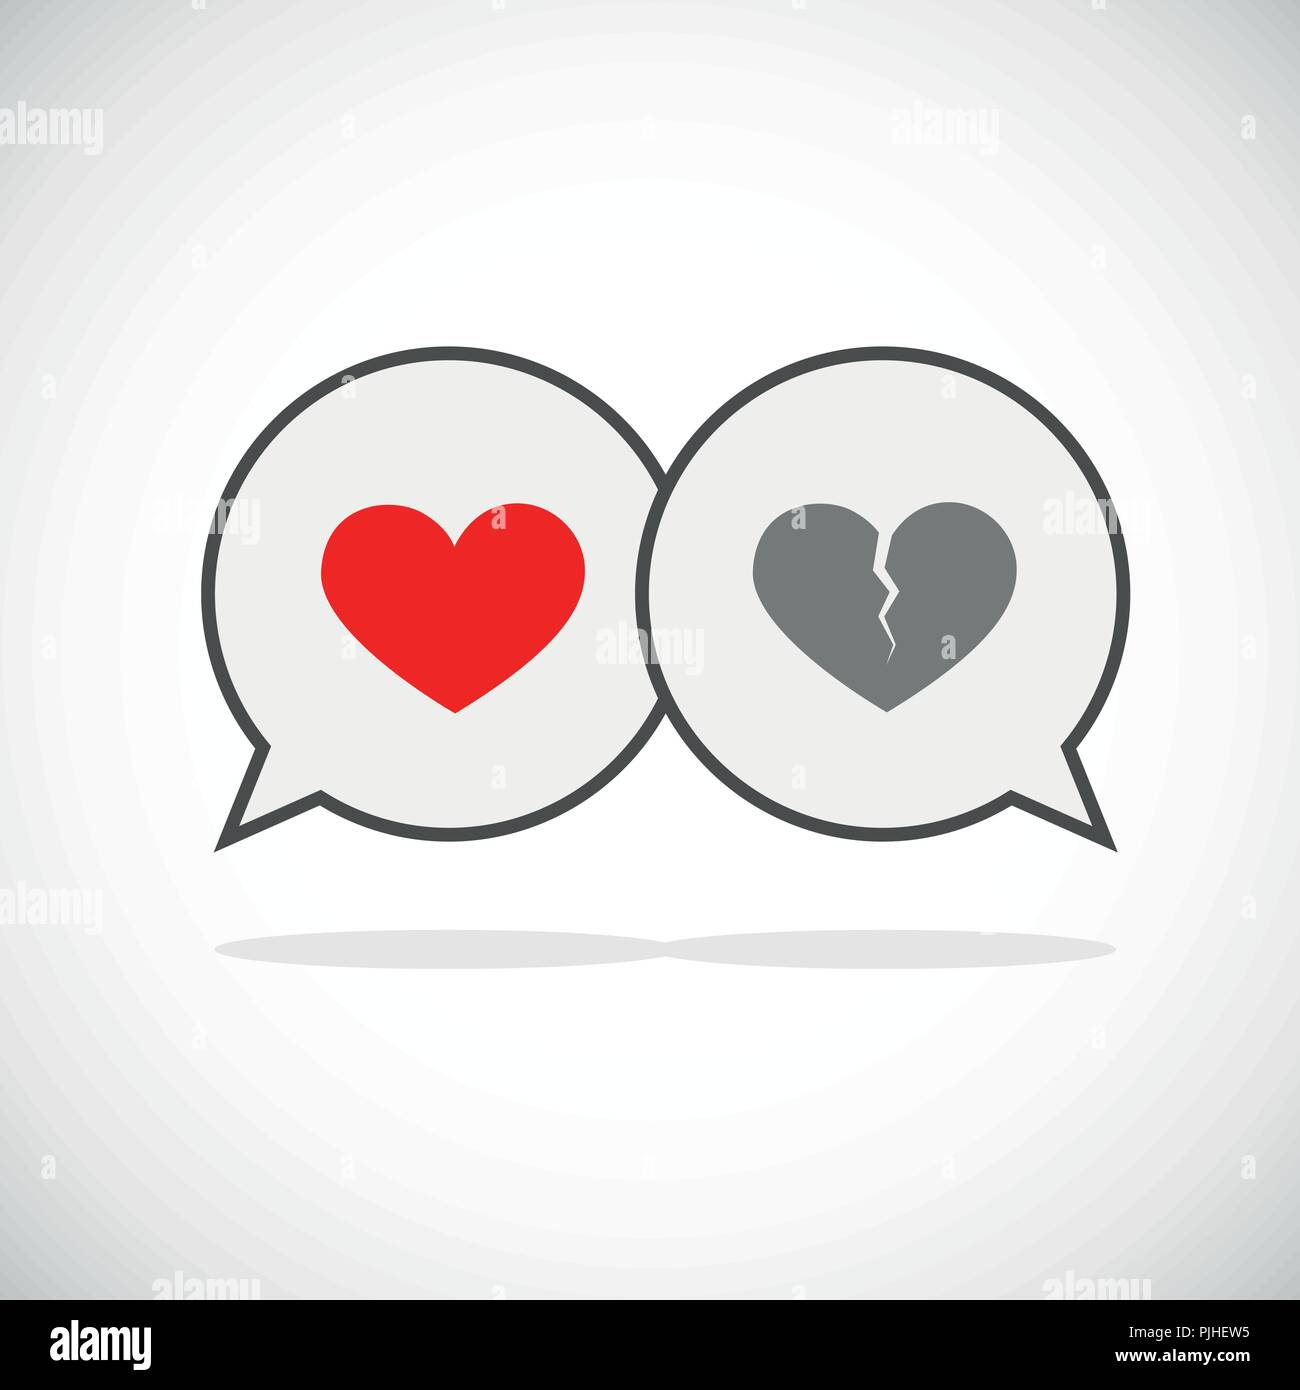 communication love and separation speach bubble icon vector illustration EPS10 - Stock Vector